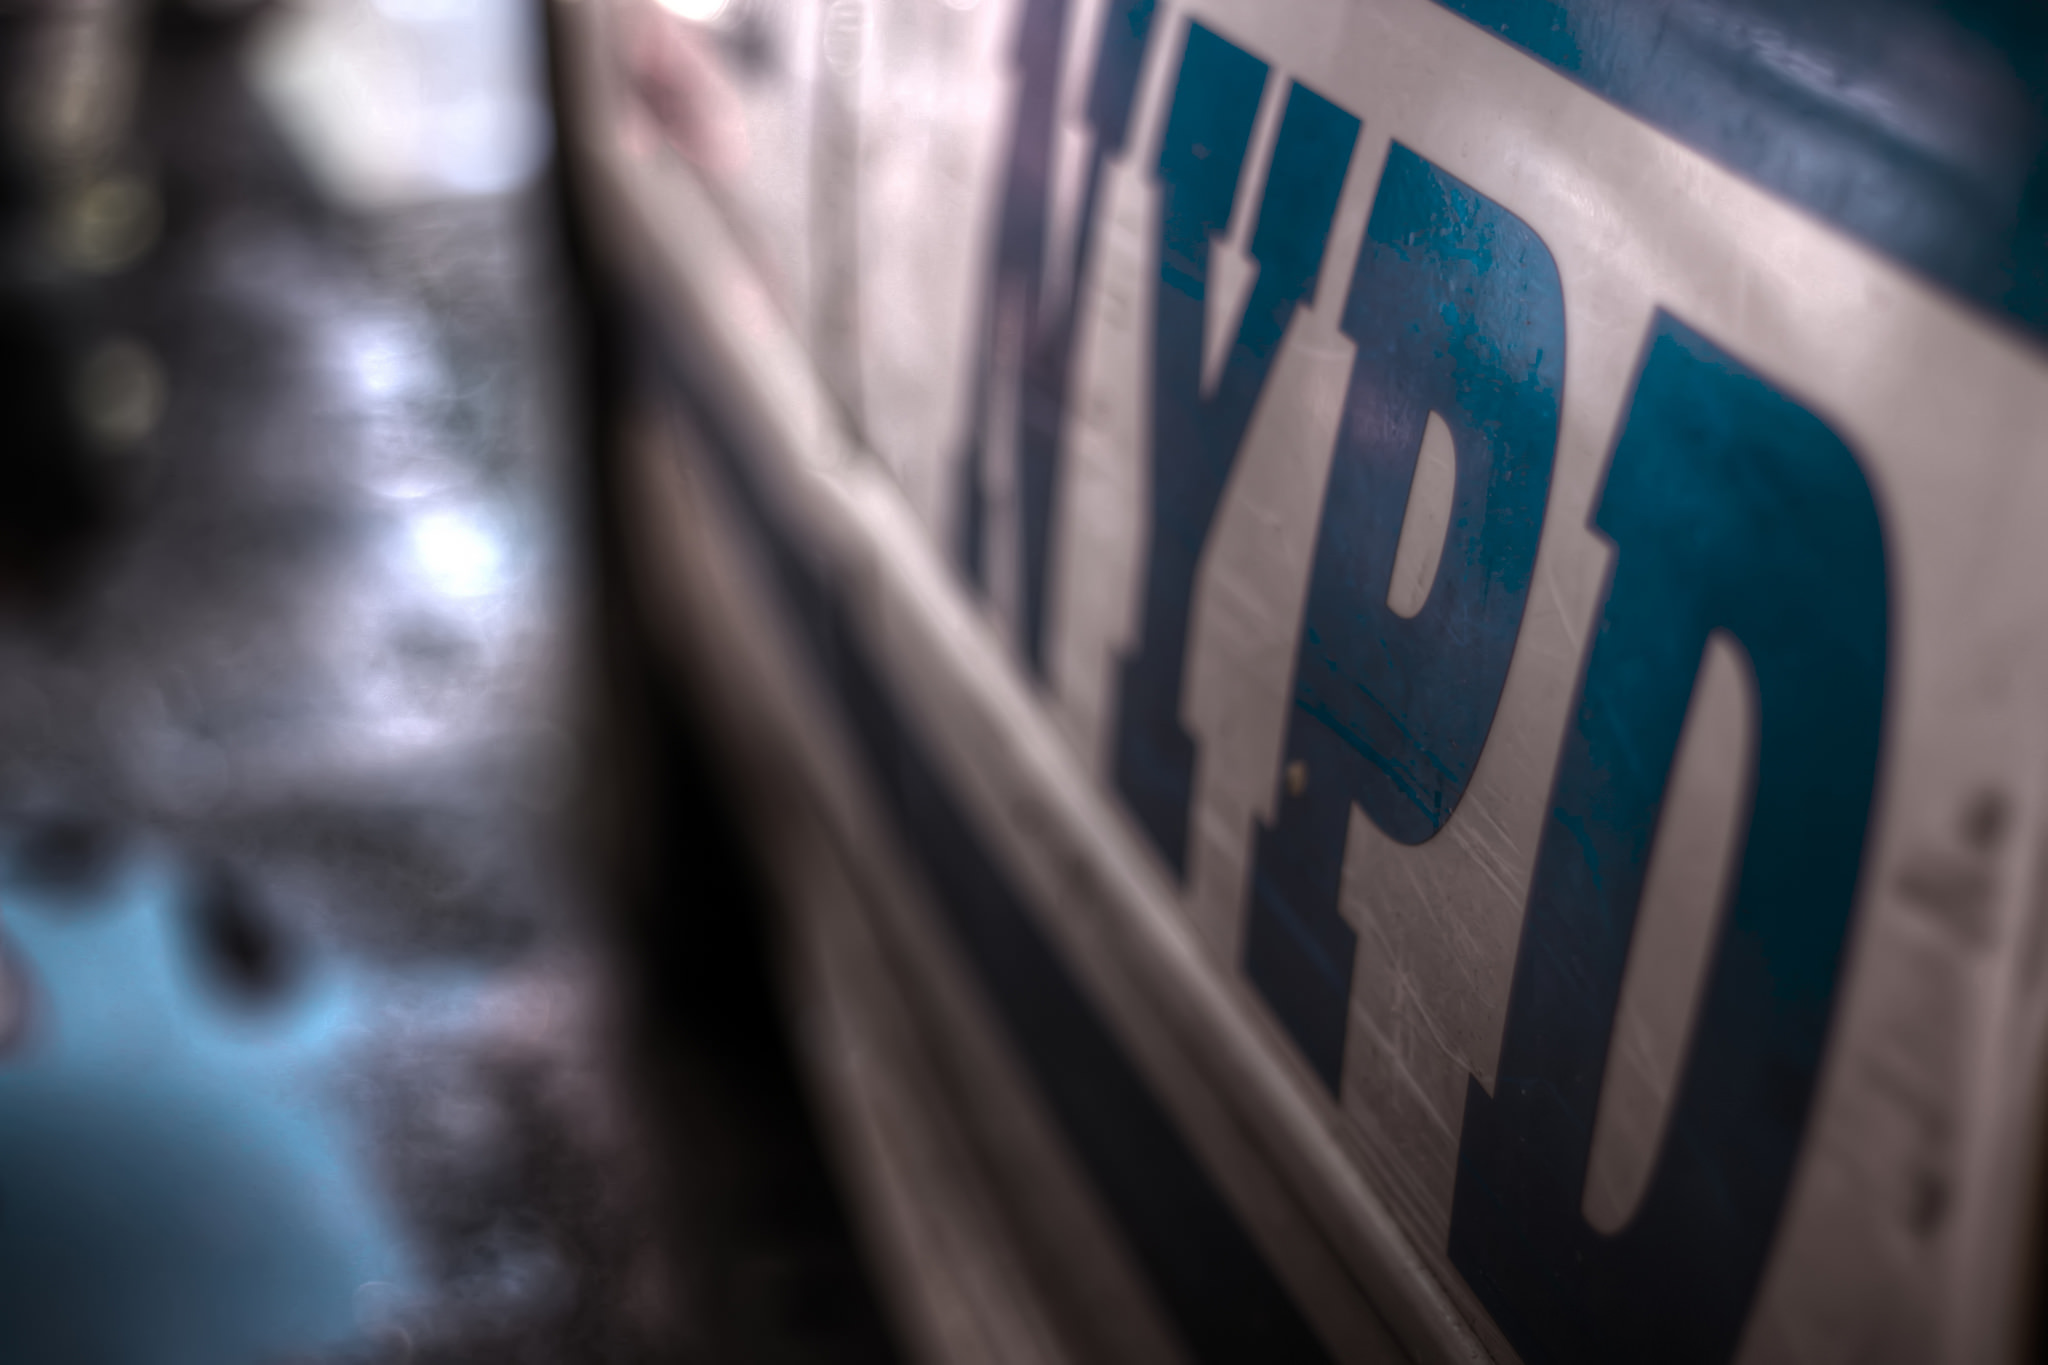 Picture of NYPD Logo